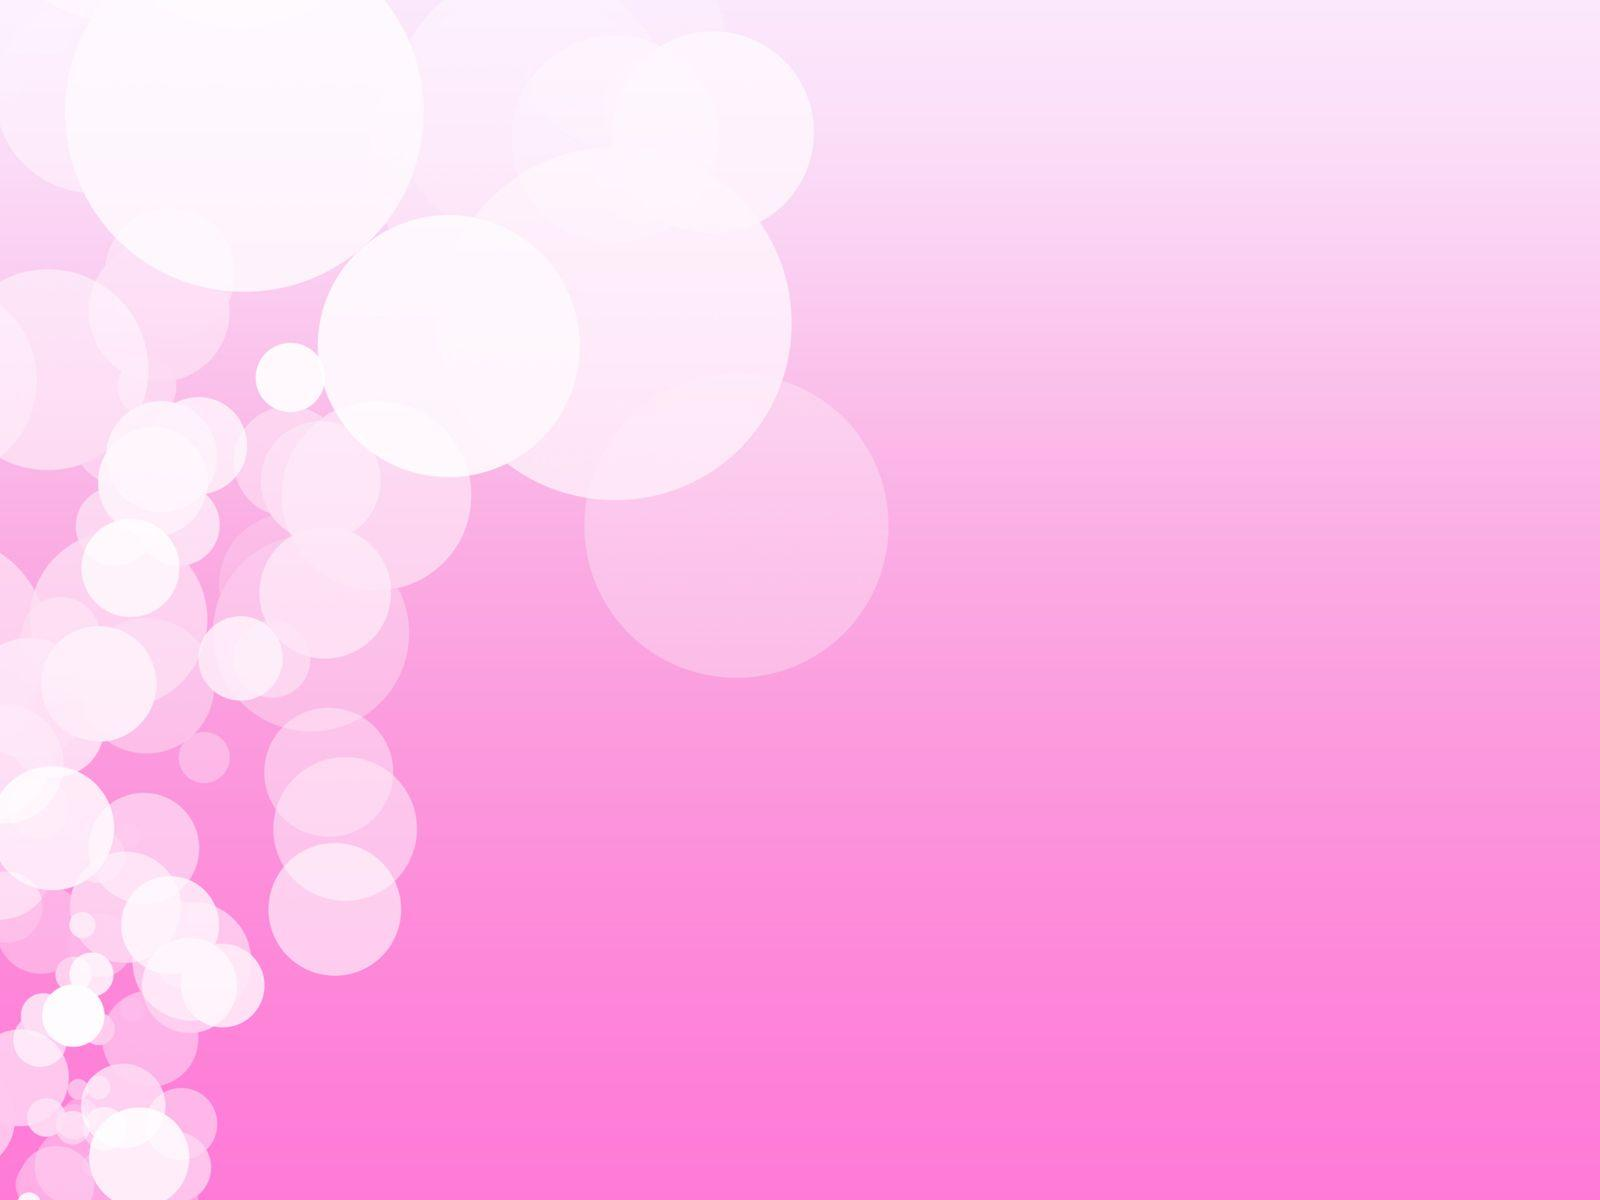 Free Purple Floral And Cream Backgrounds For PowerPoint